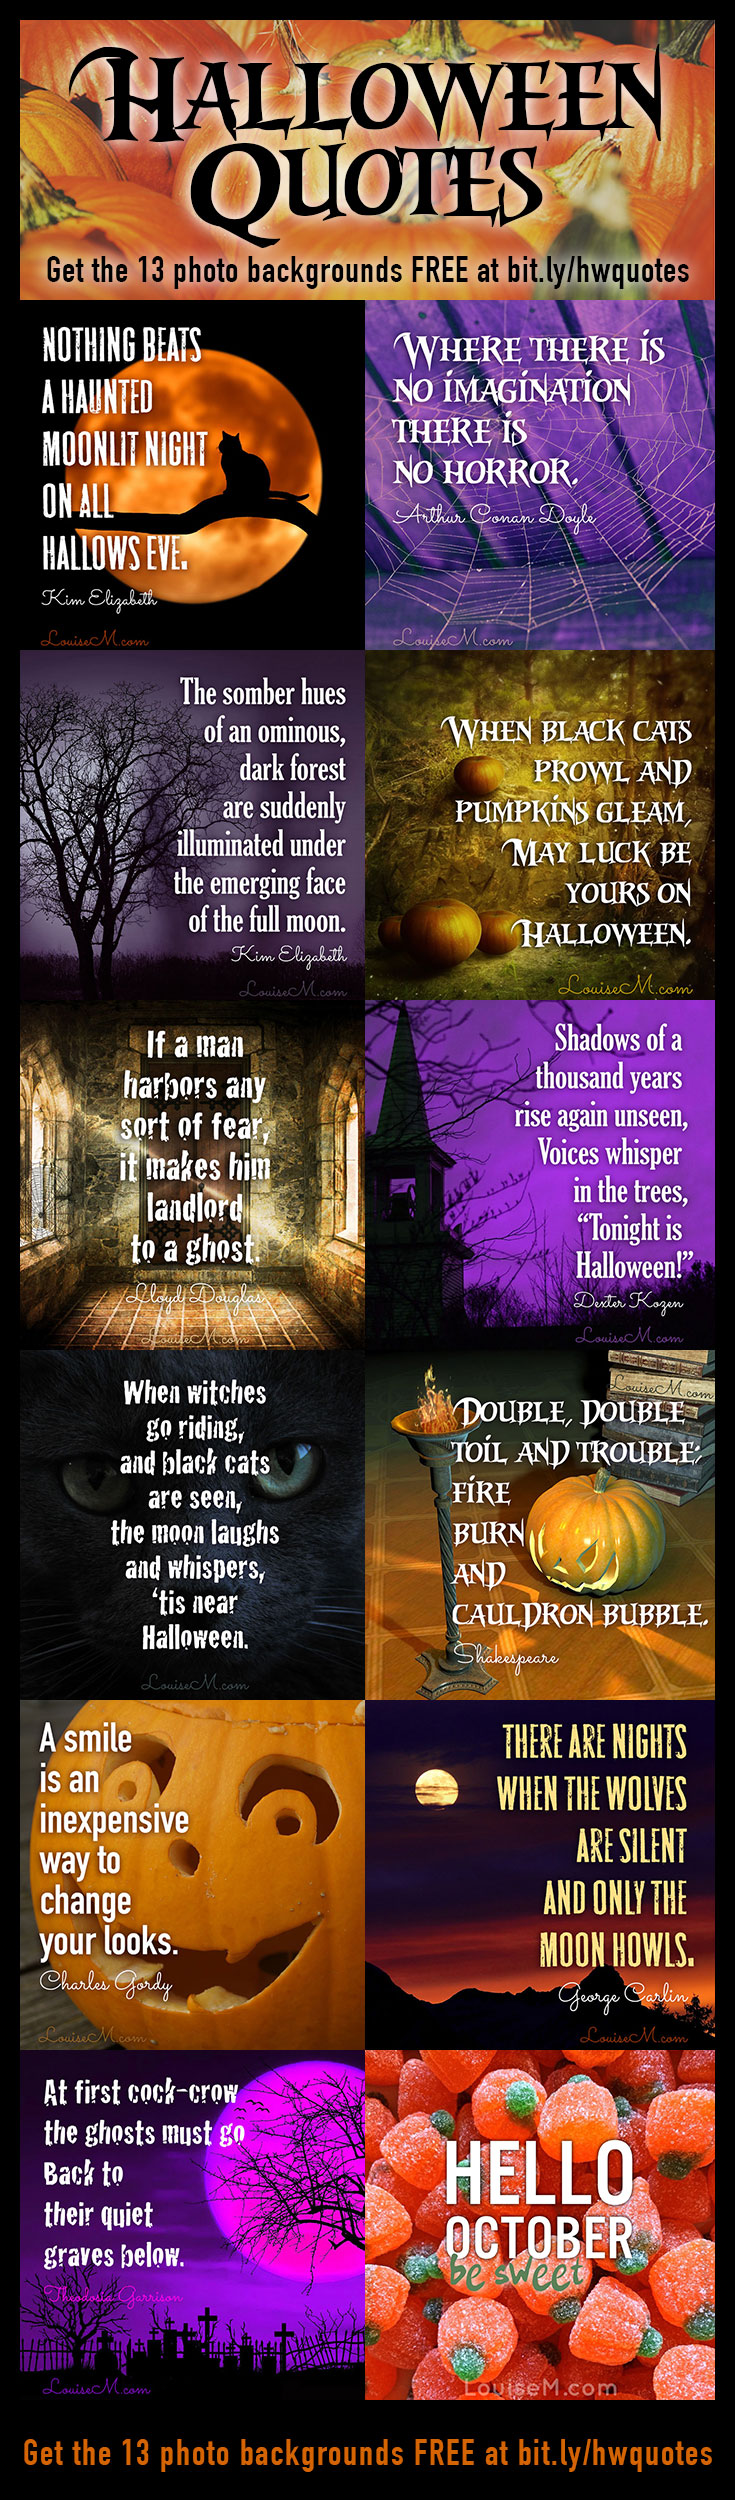 Need spooky Halloween quotes? Here are 31 short quotes and 13 simple Halloween photos - perfect for picture quotes! Plus links to instructions and fonts.